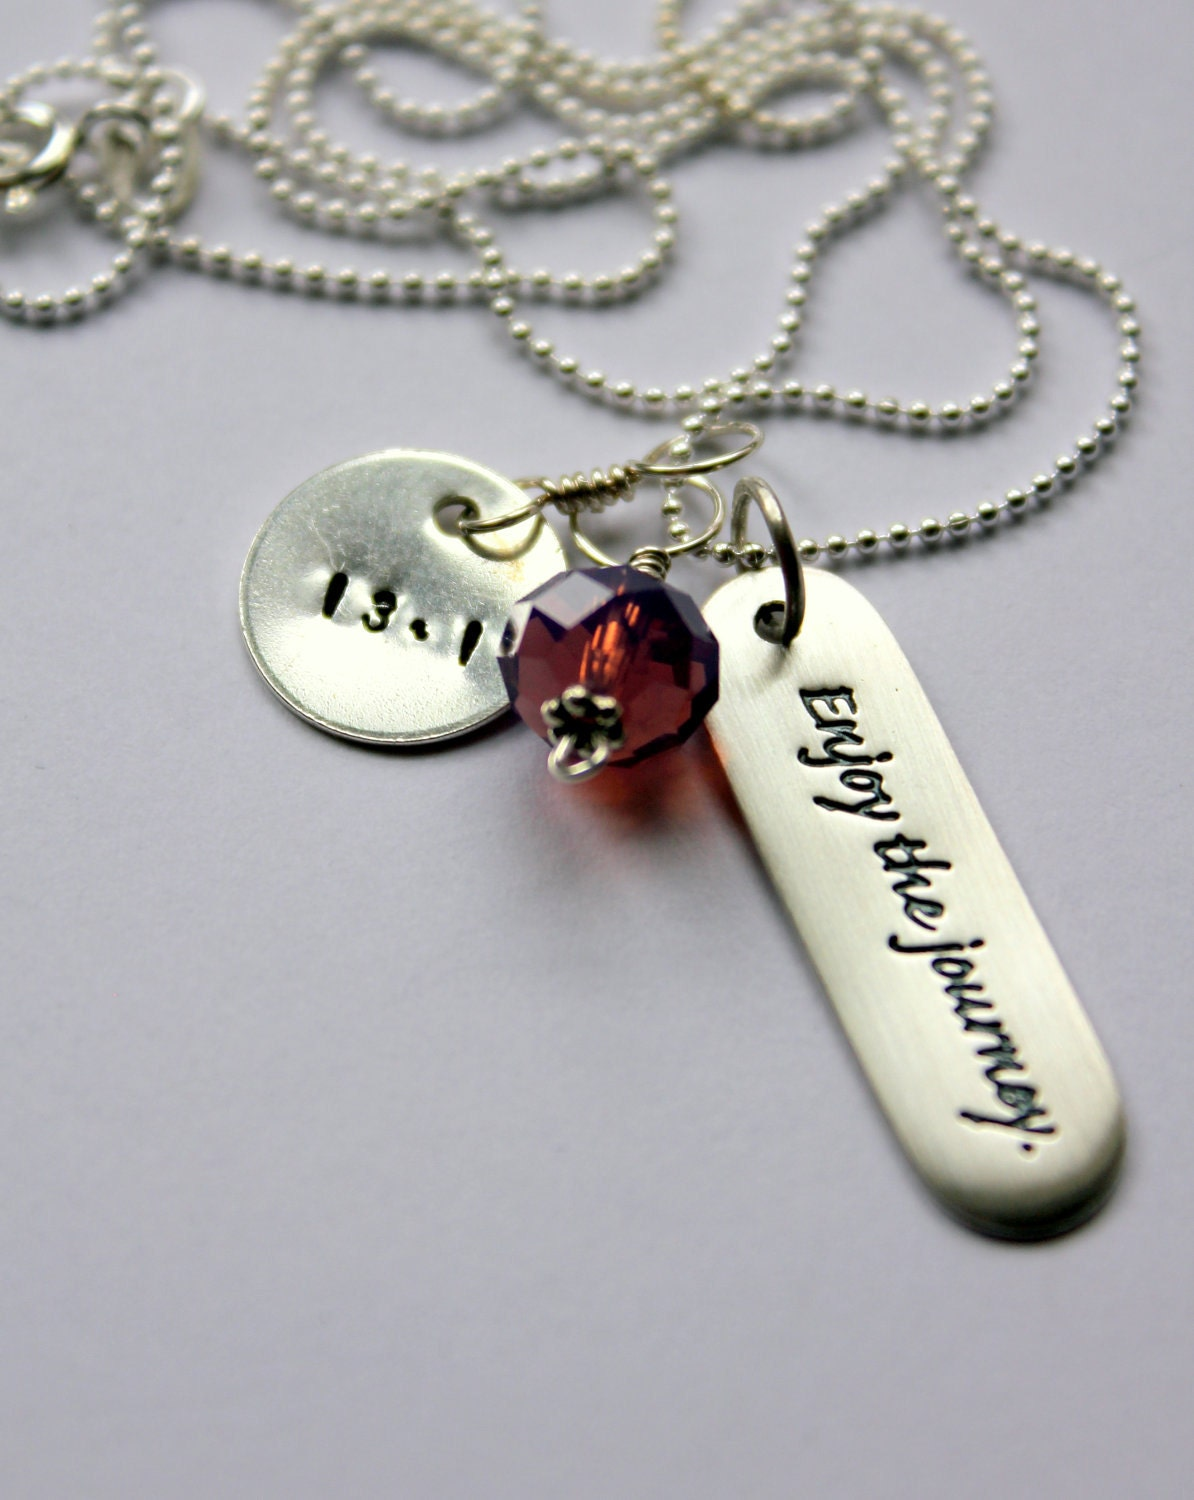 Runners Necklace, Half Marathon, Personalized Quote Running, Marathon Necklace, Running Pendant, Marathon Congratulations